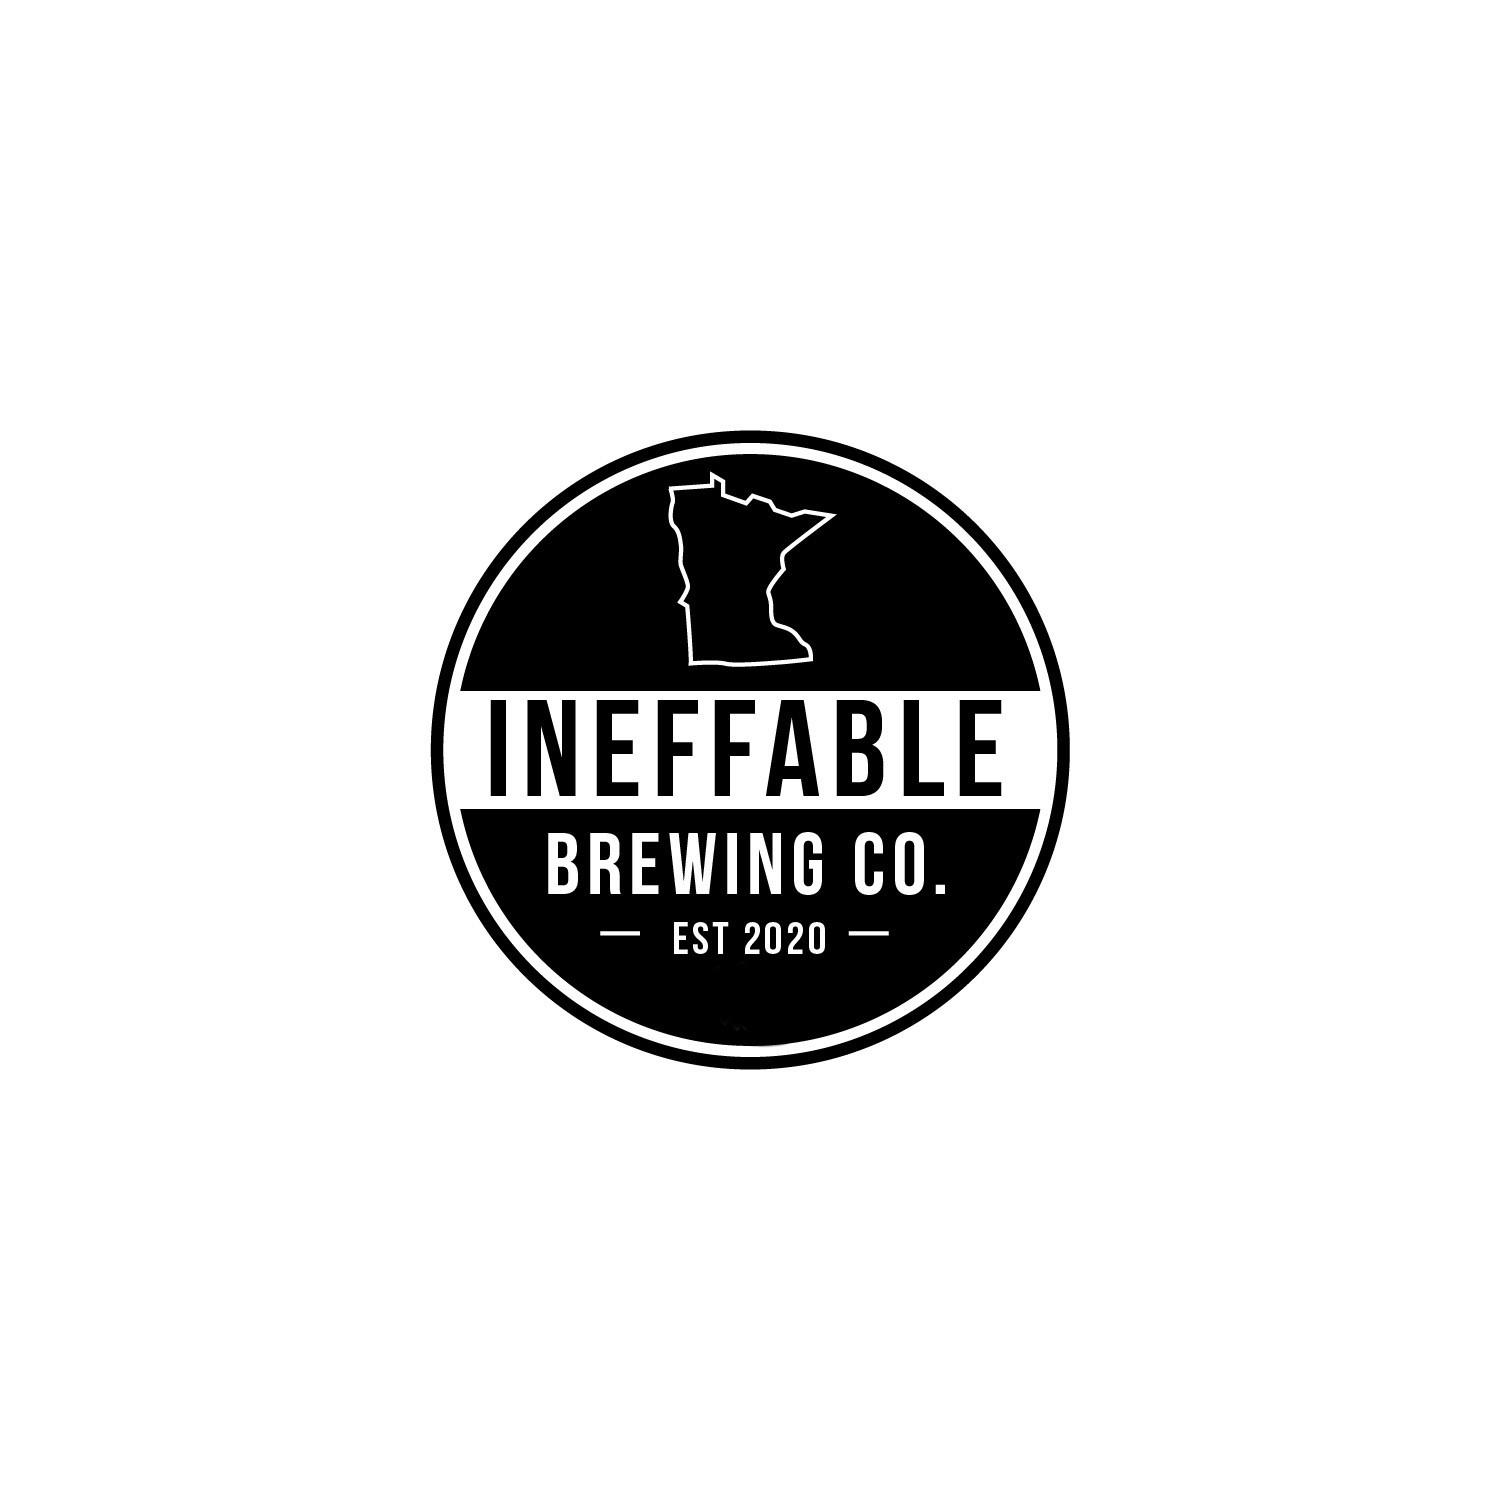 Ineffable Brewing Co